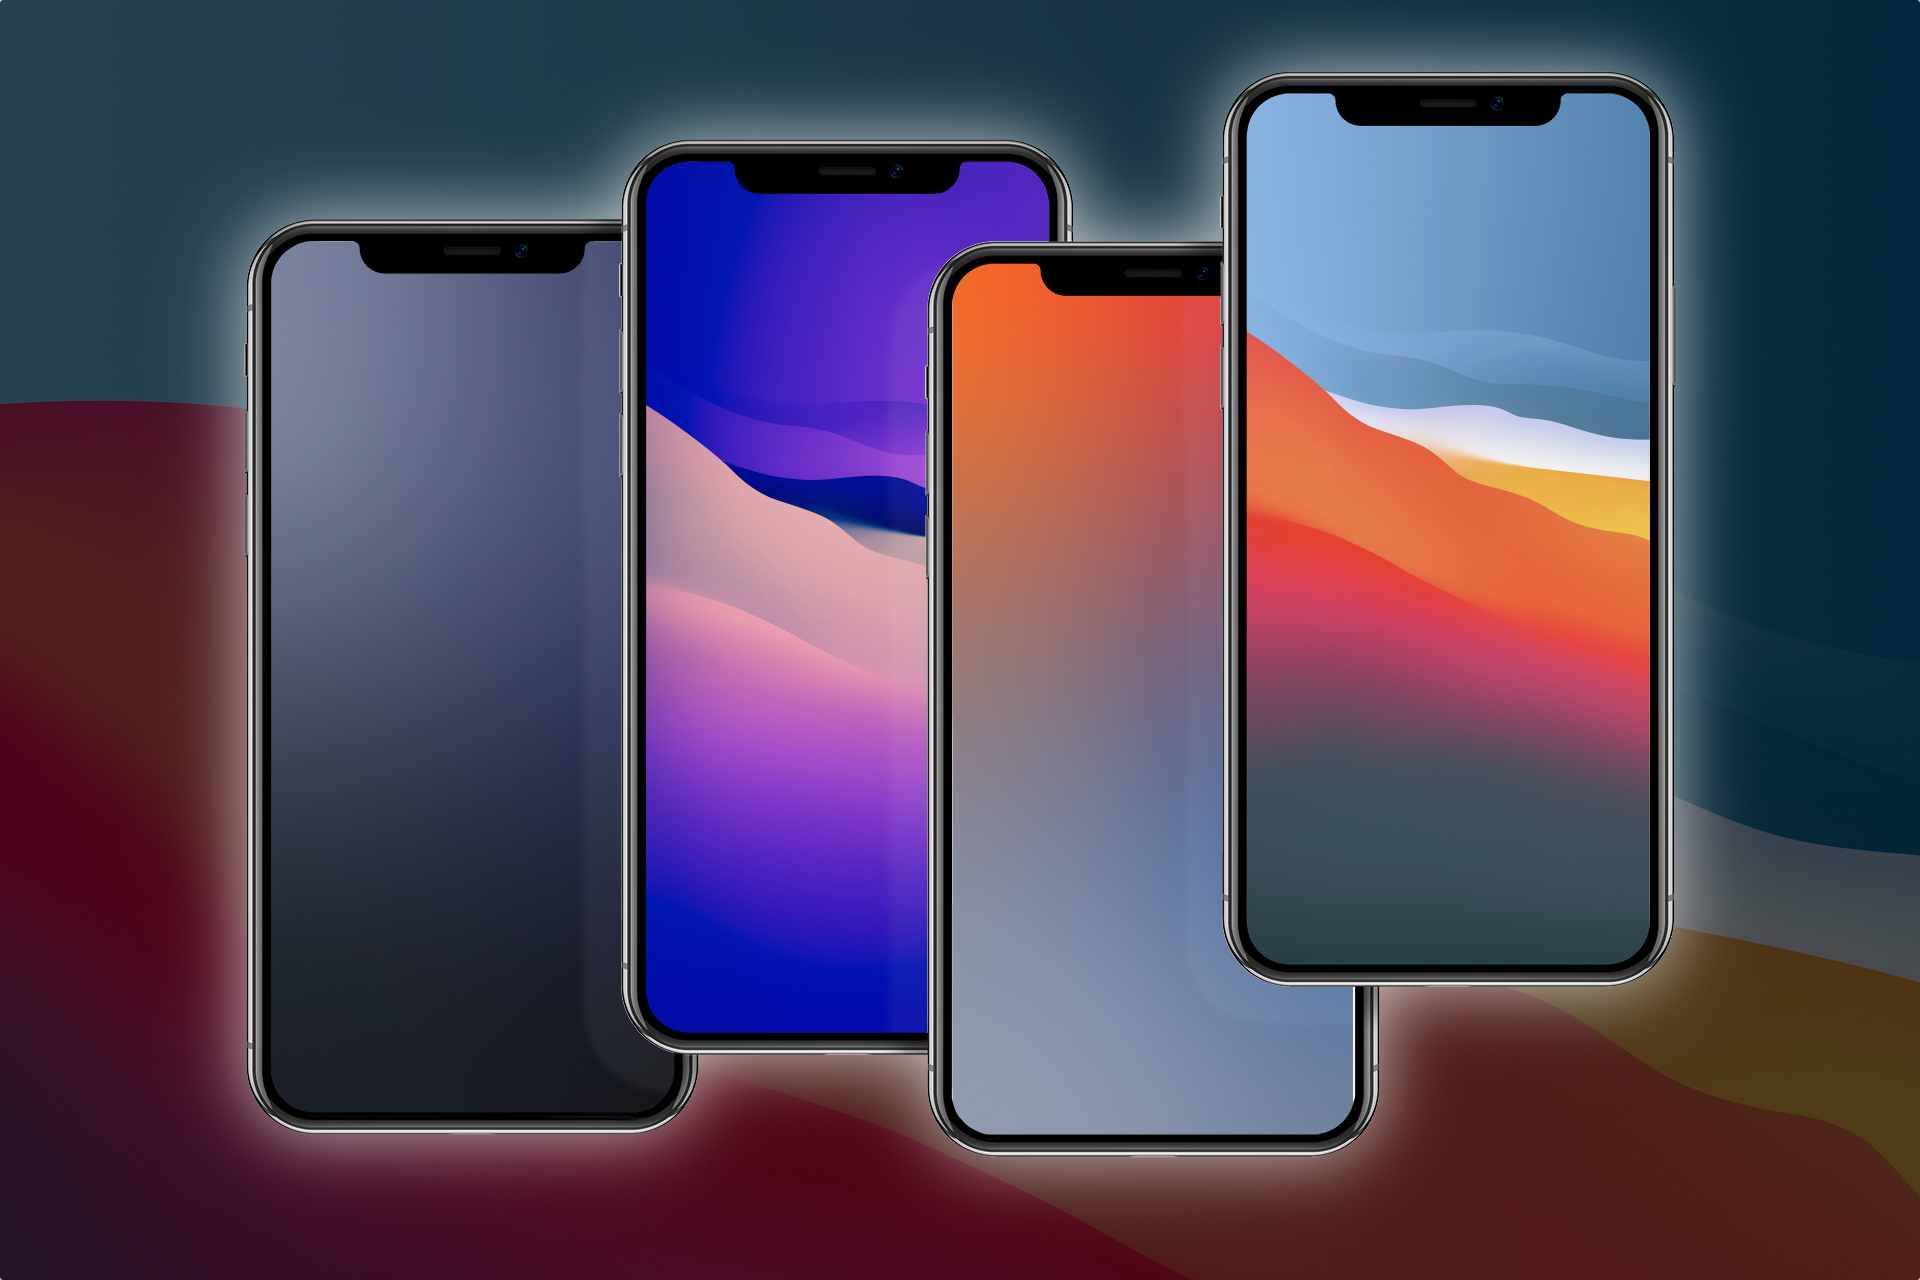  iPhone Wallpapers - cover